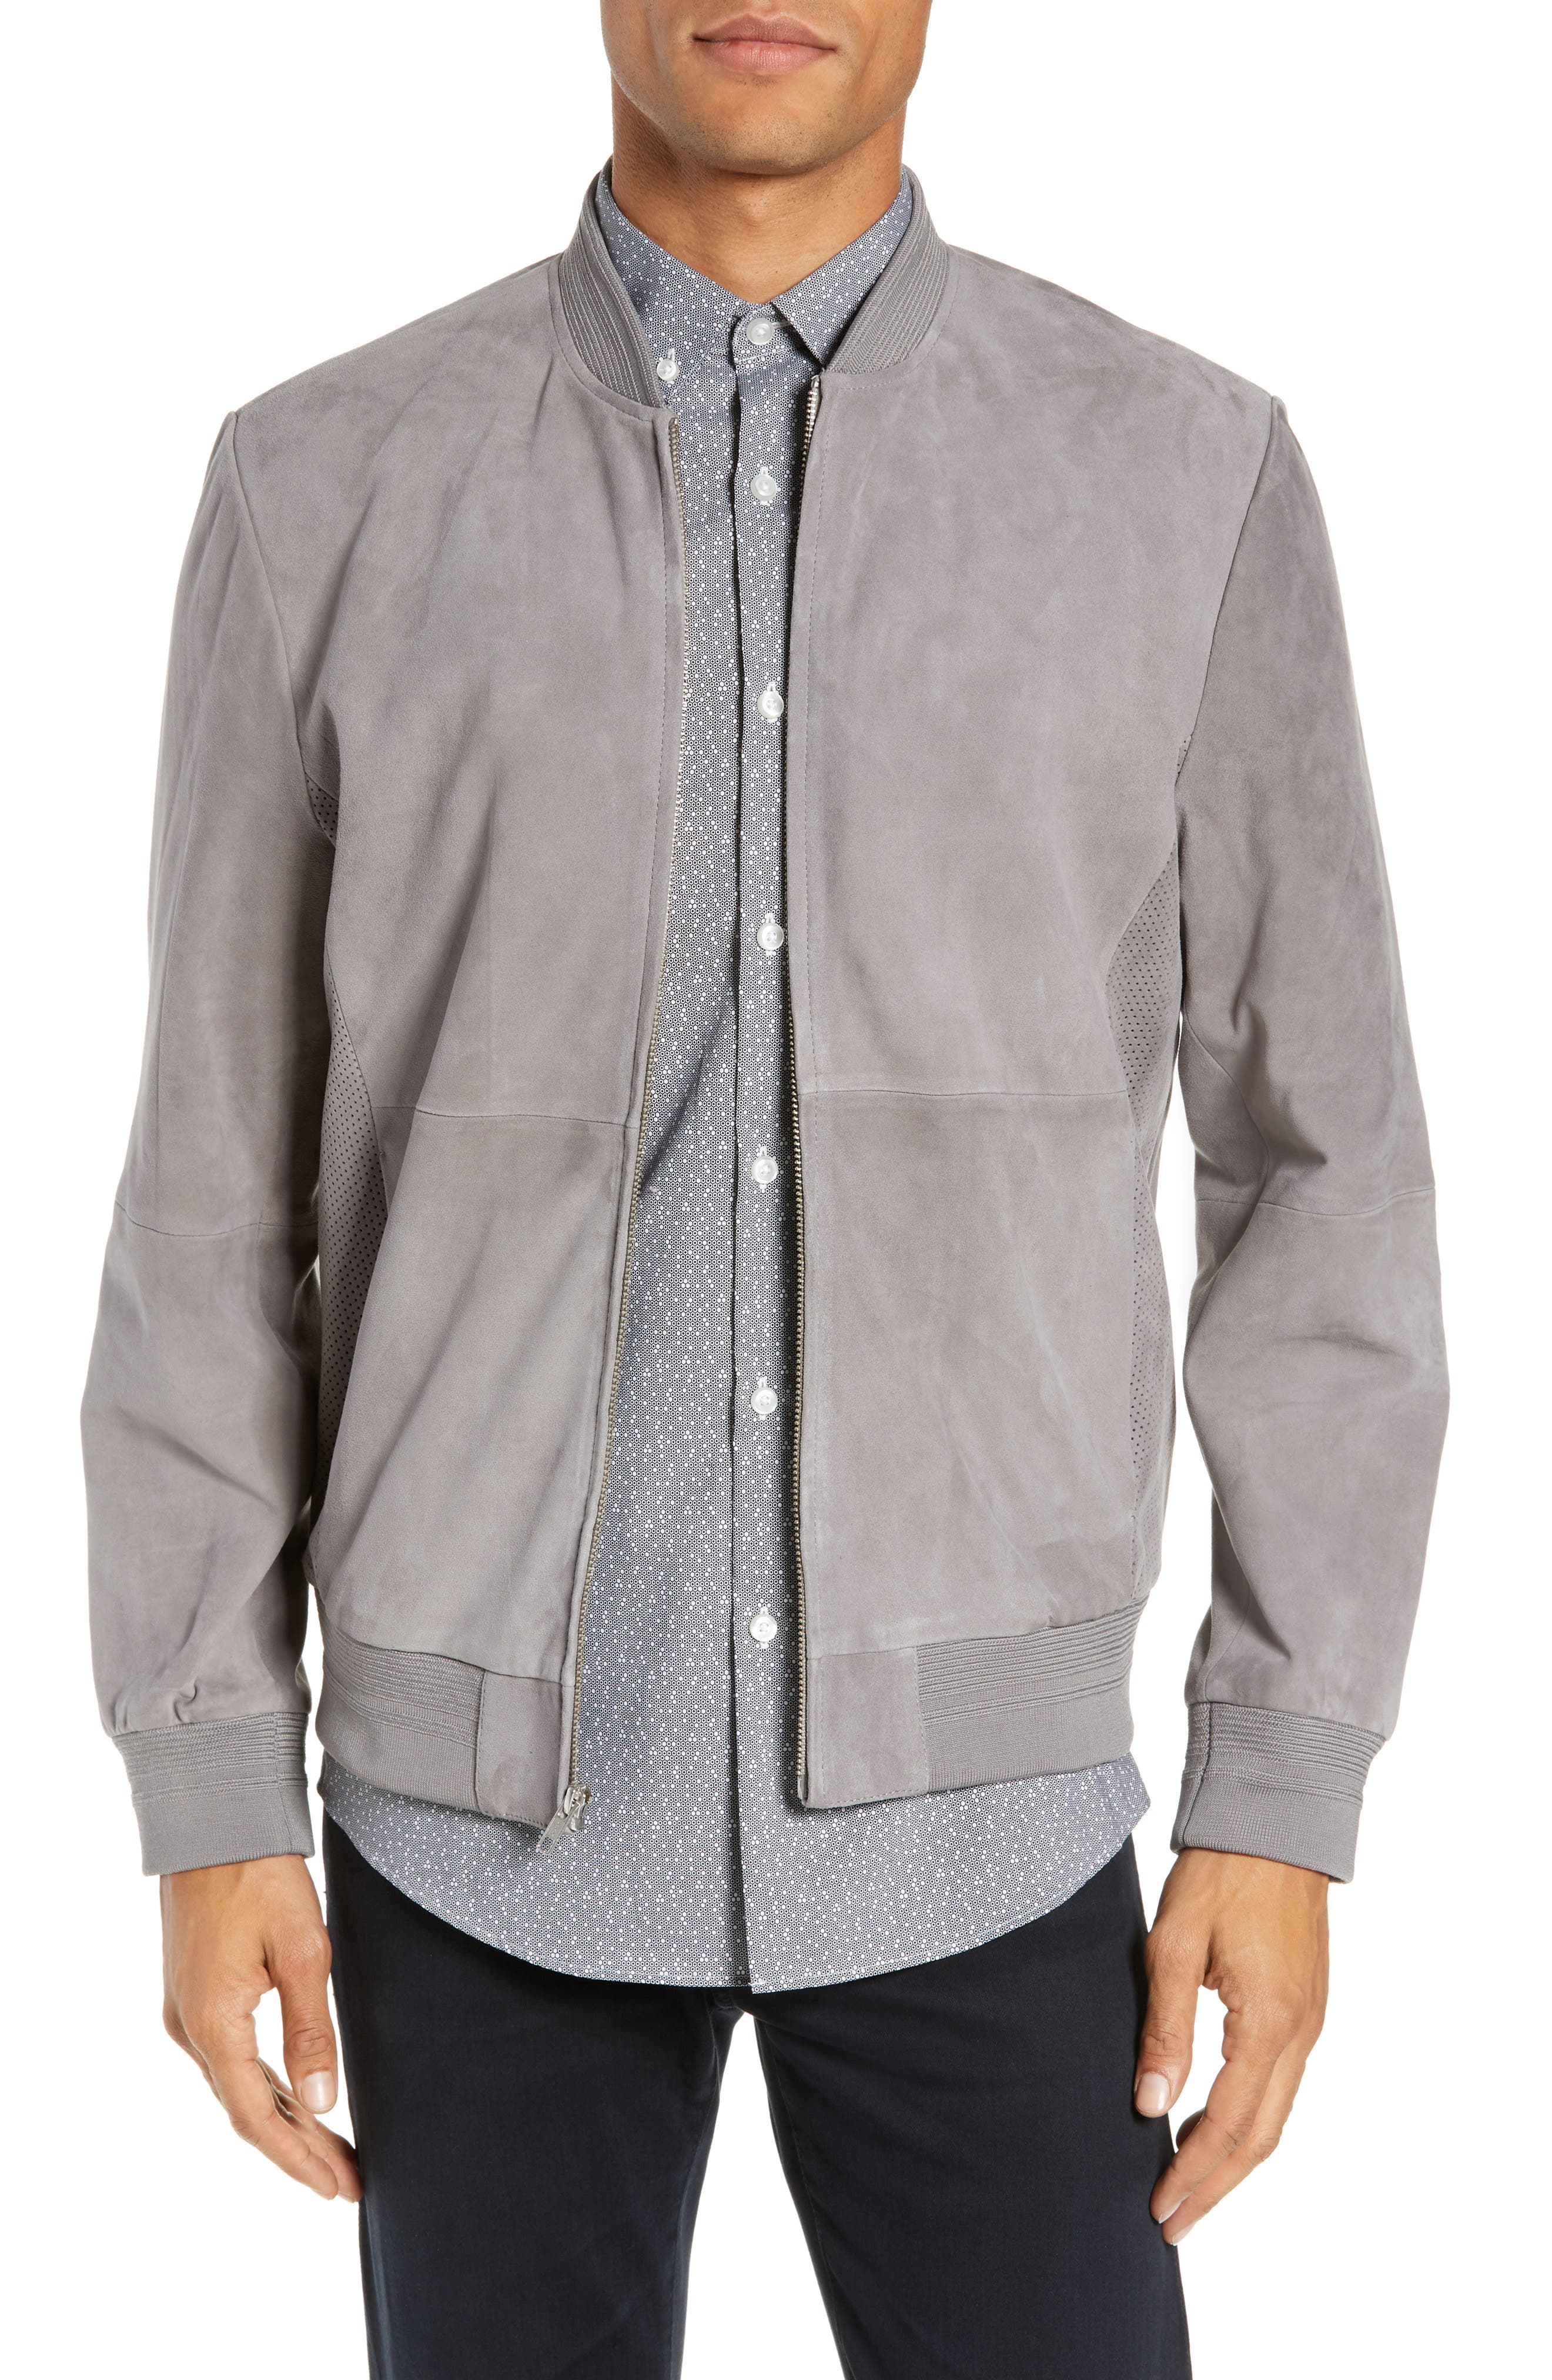 Suede Bomber Jacket,                         Main,                         color, 030